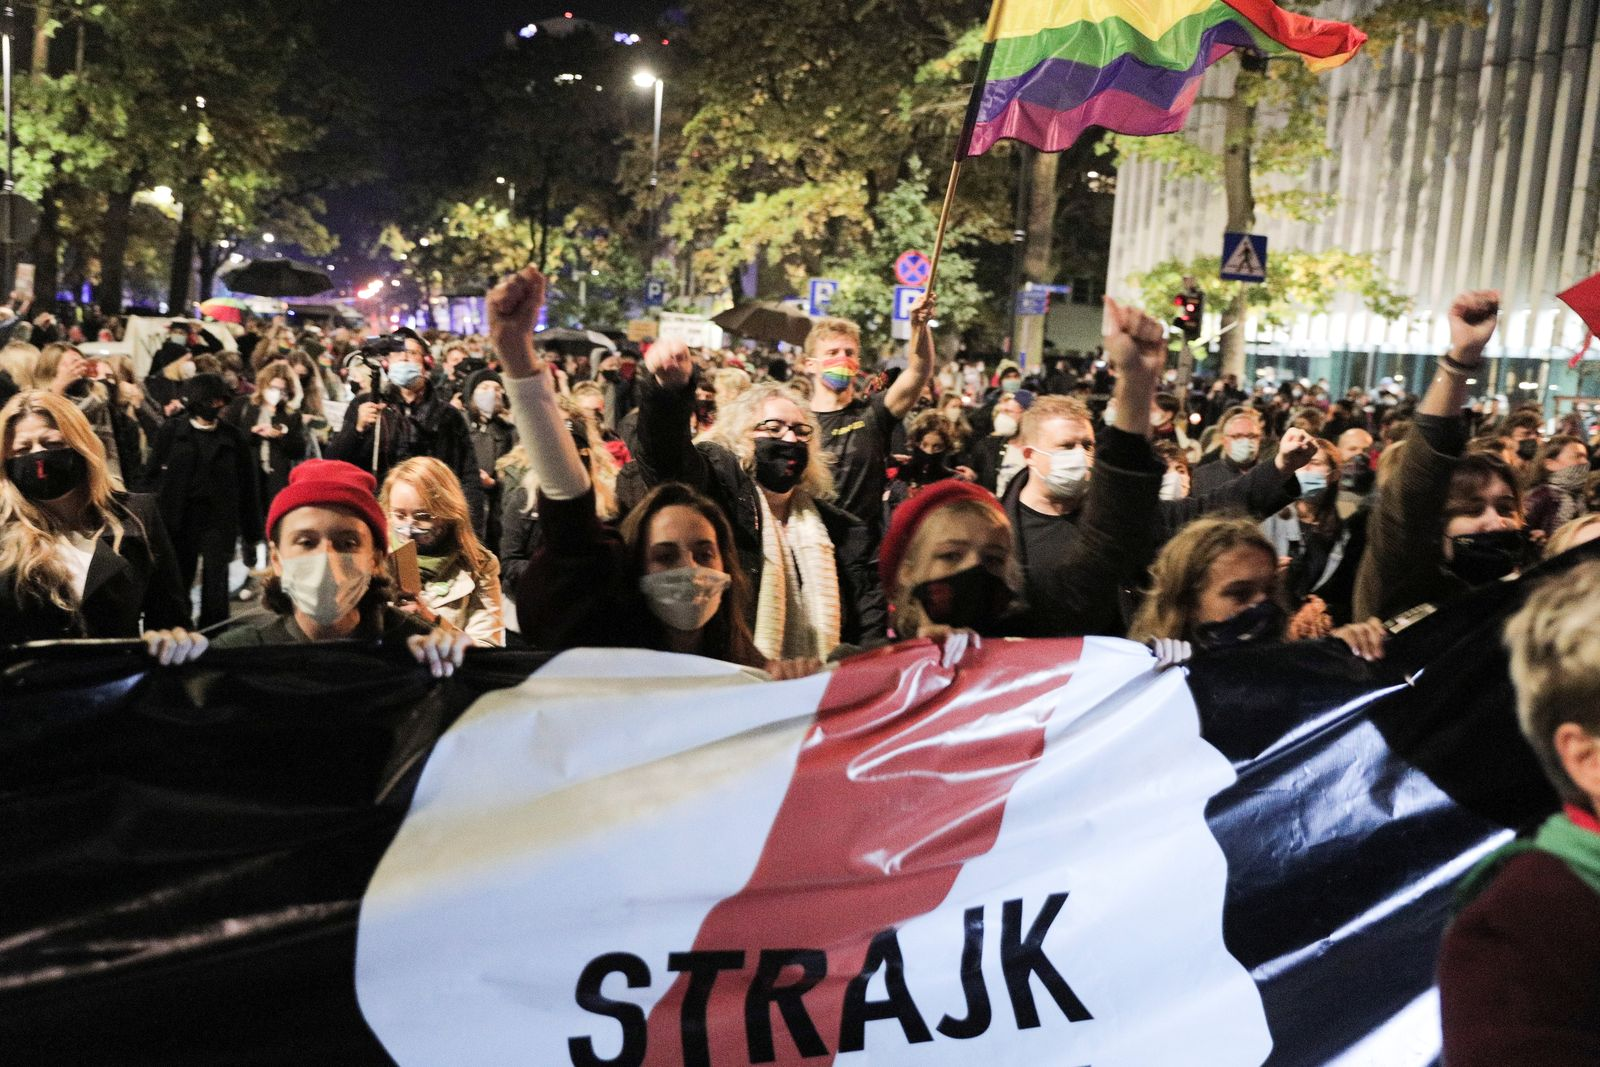 People protest against imposing further restrictions on abortion law in Poland in front of the Constitutional Court building in Warsaw